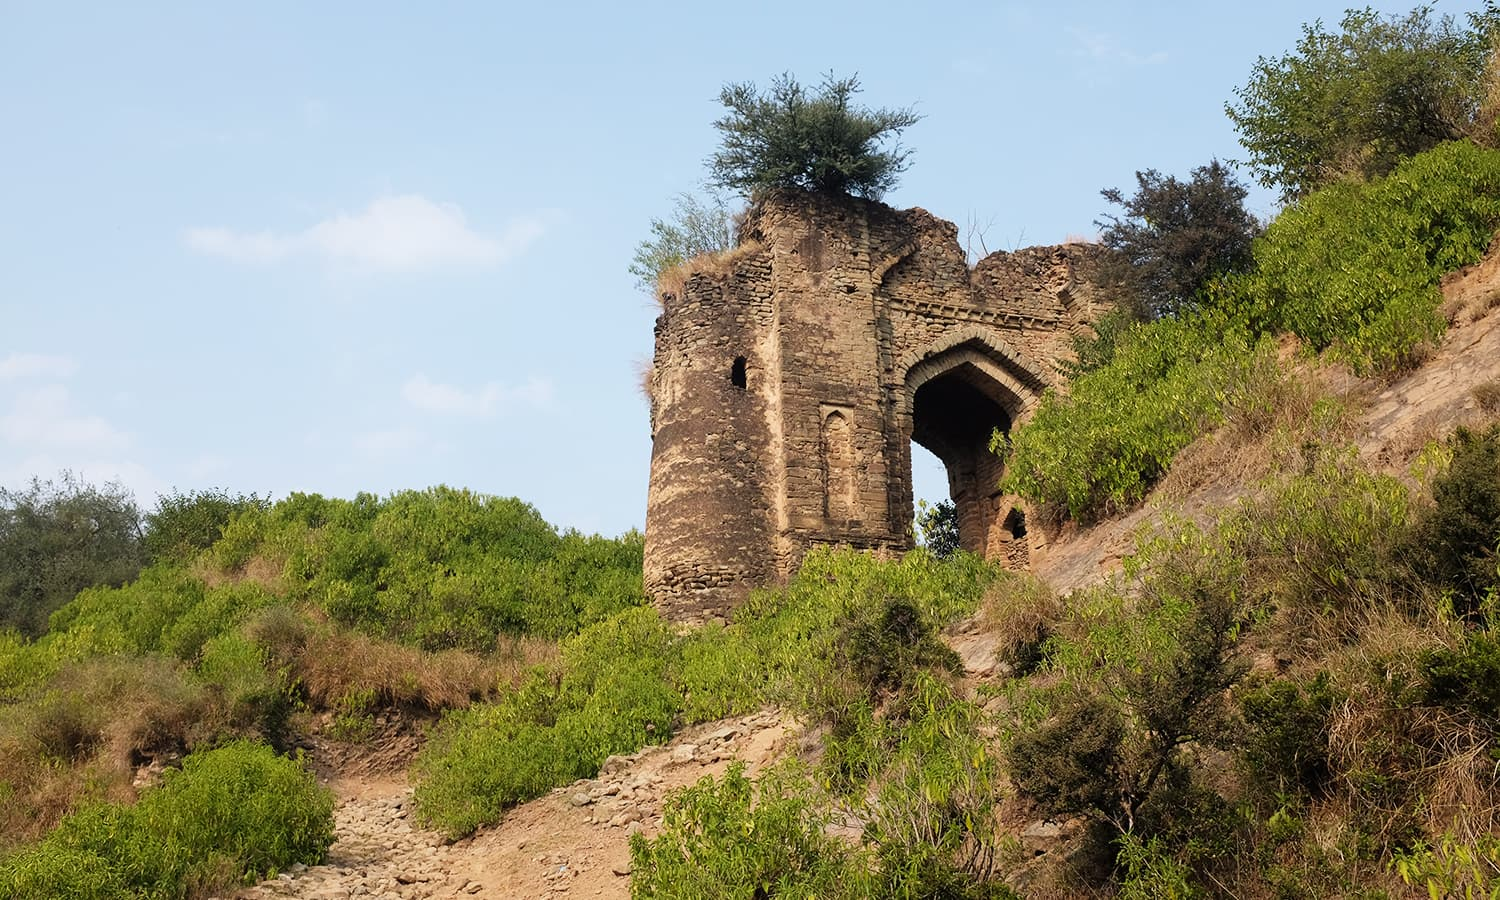 The Haathi gate has survived turbulent times.